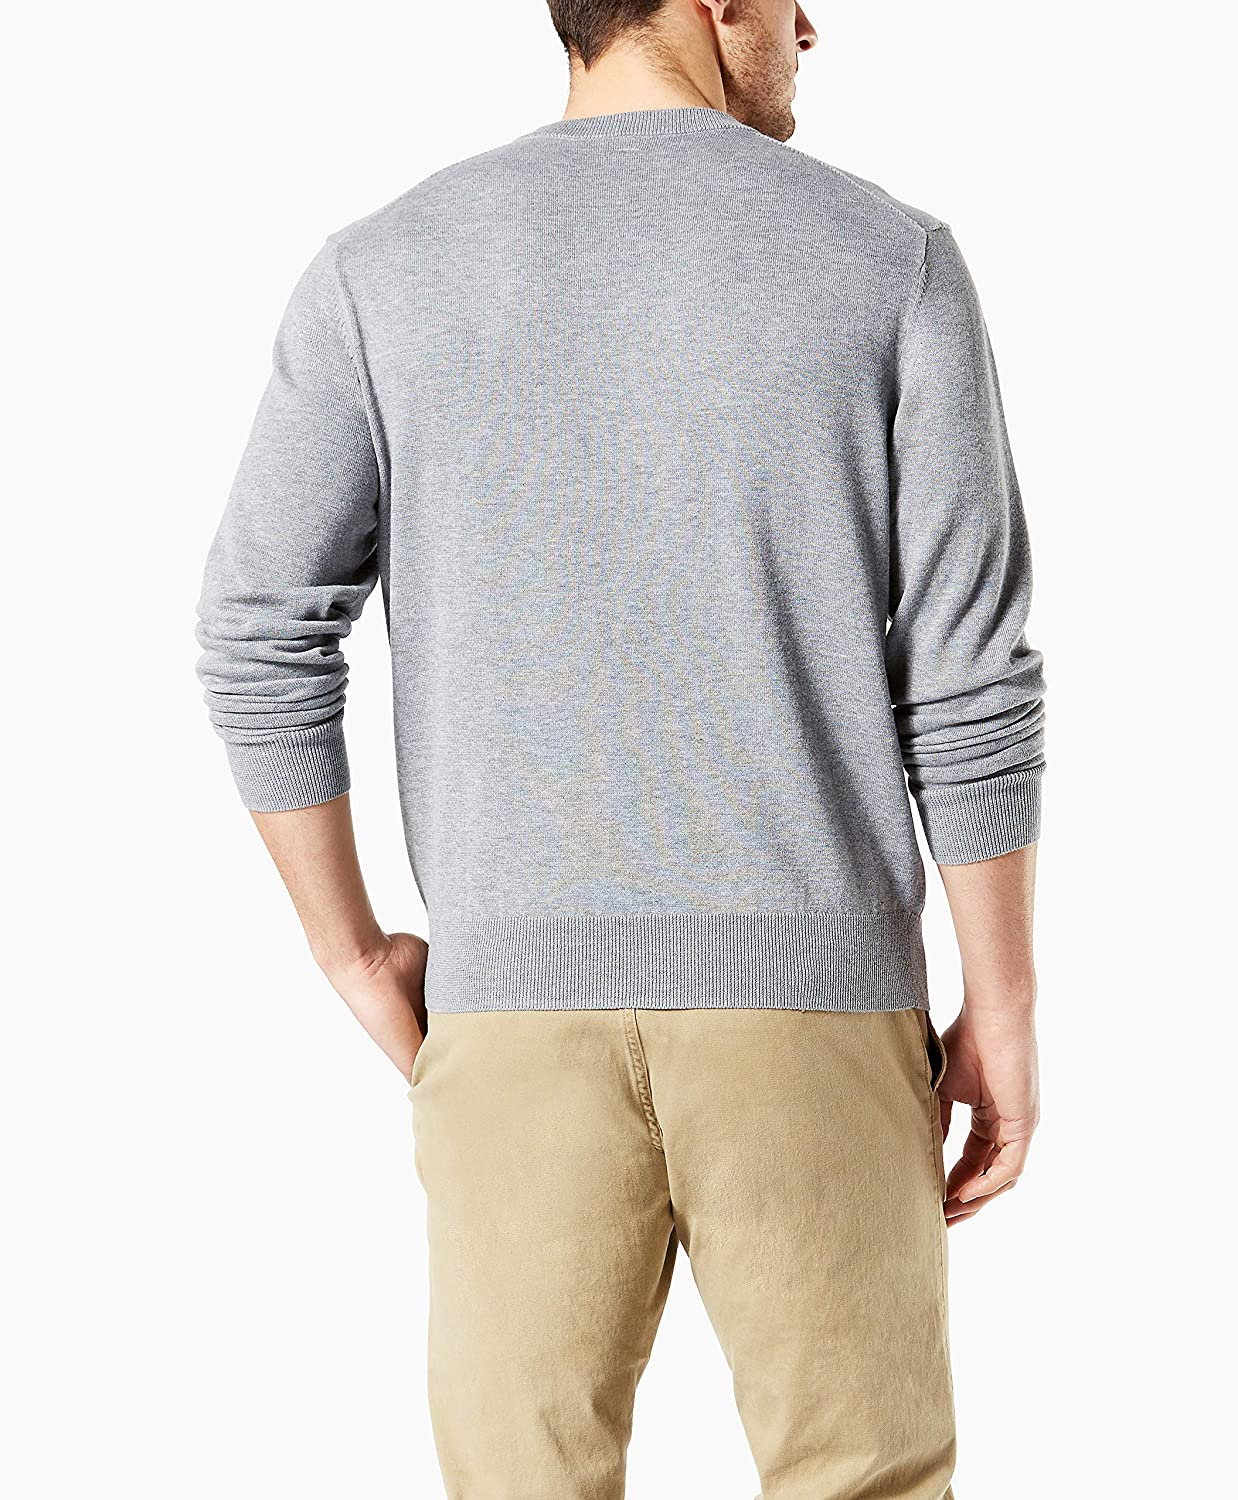 Dockers Mens Cotton Crewneck Long Sleeve Sweater